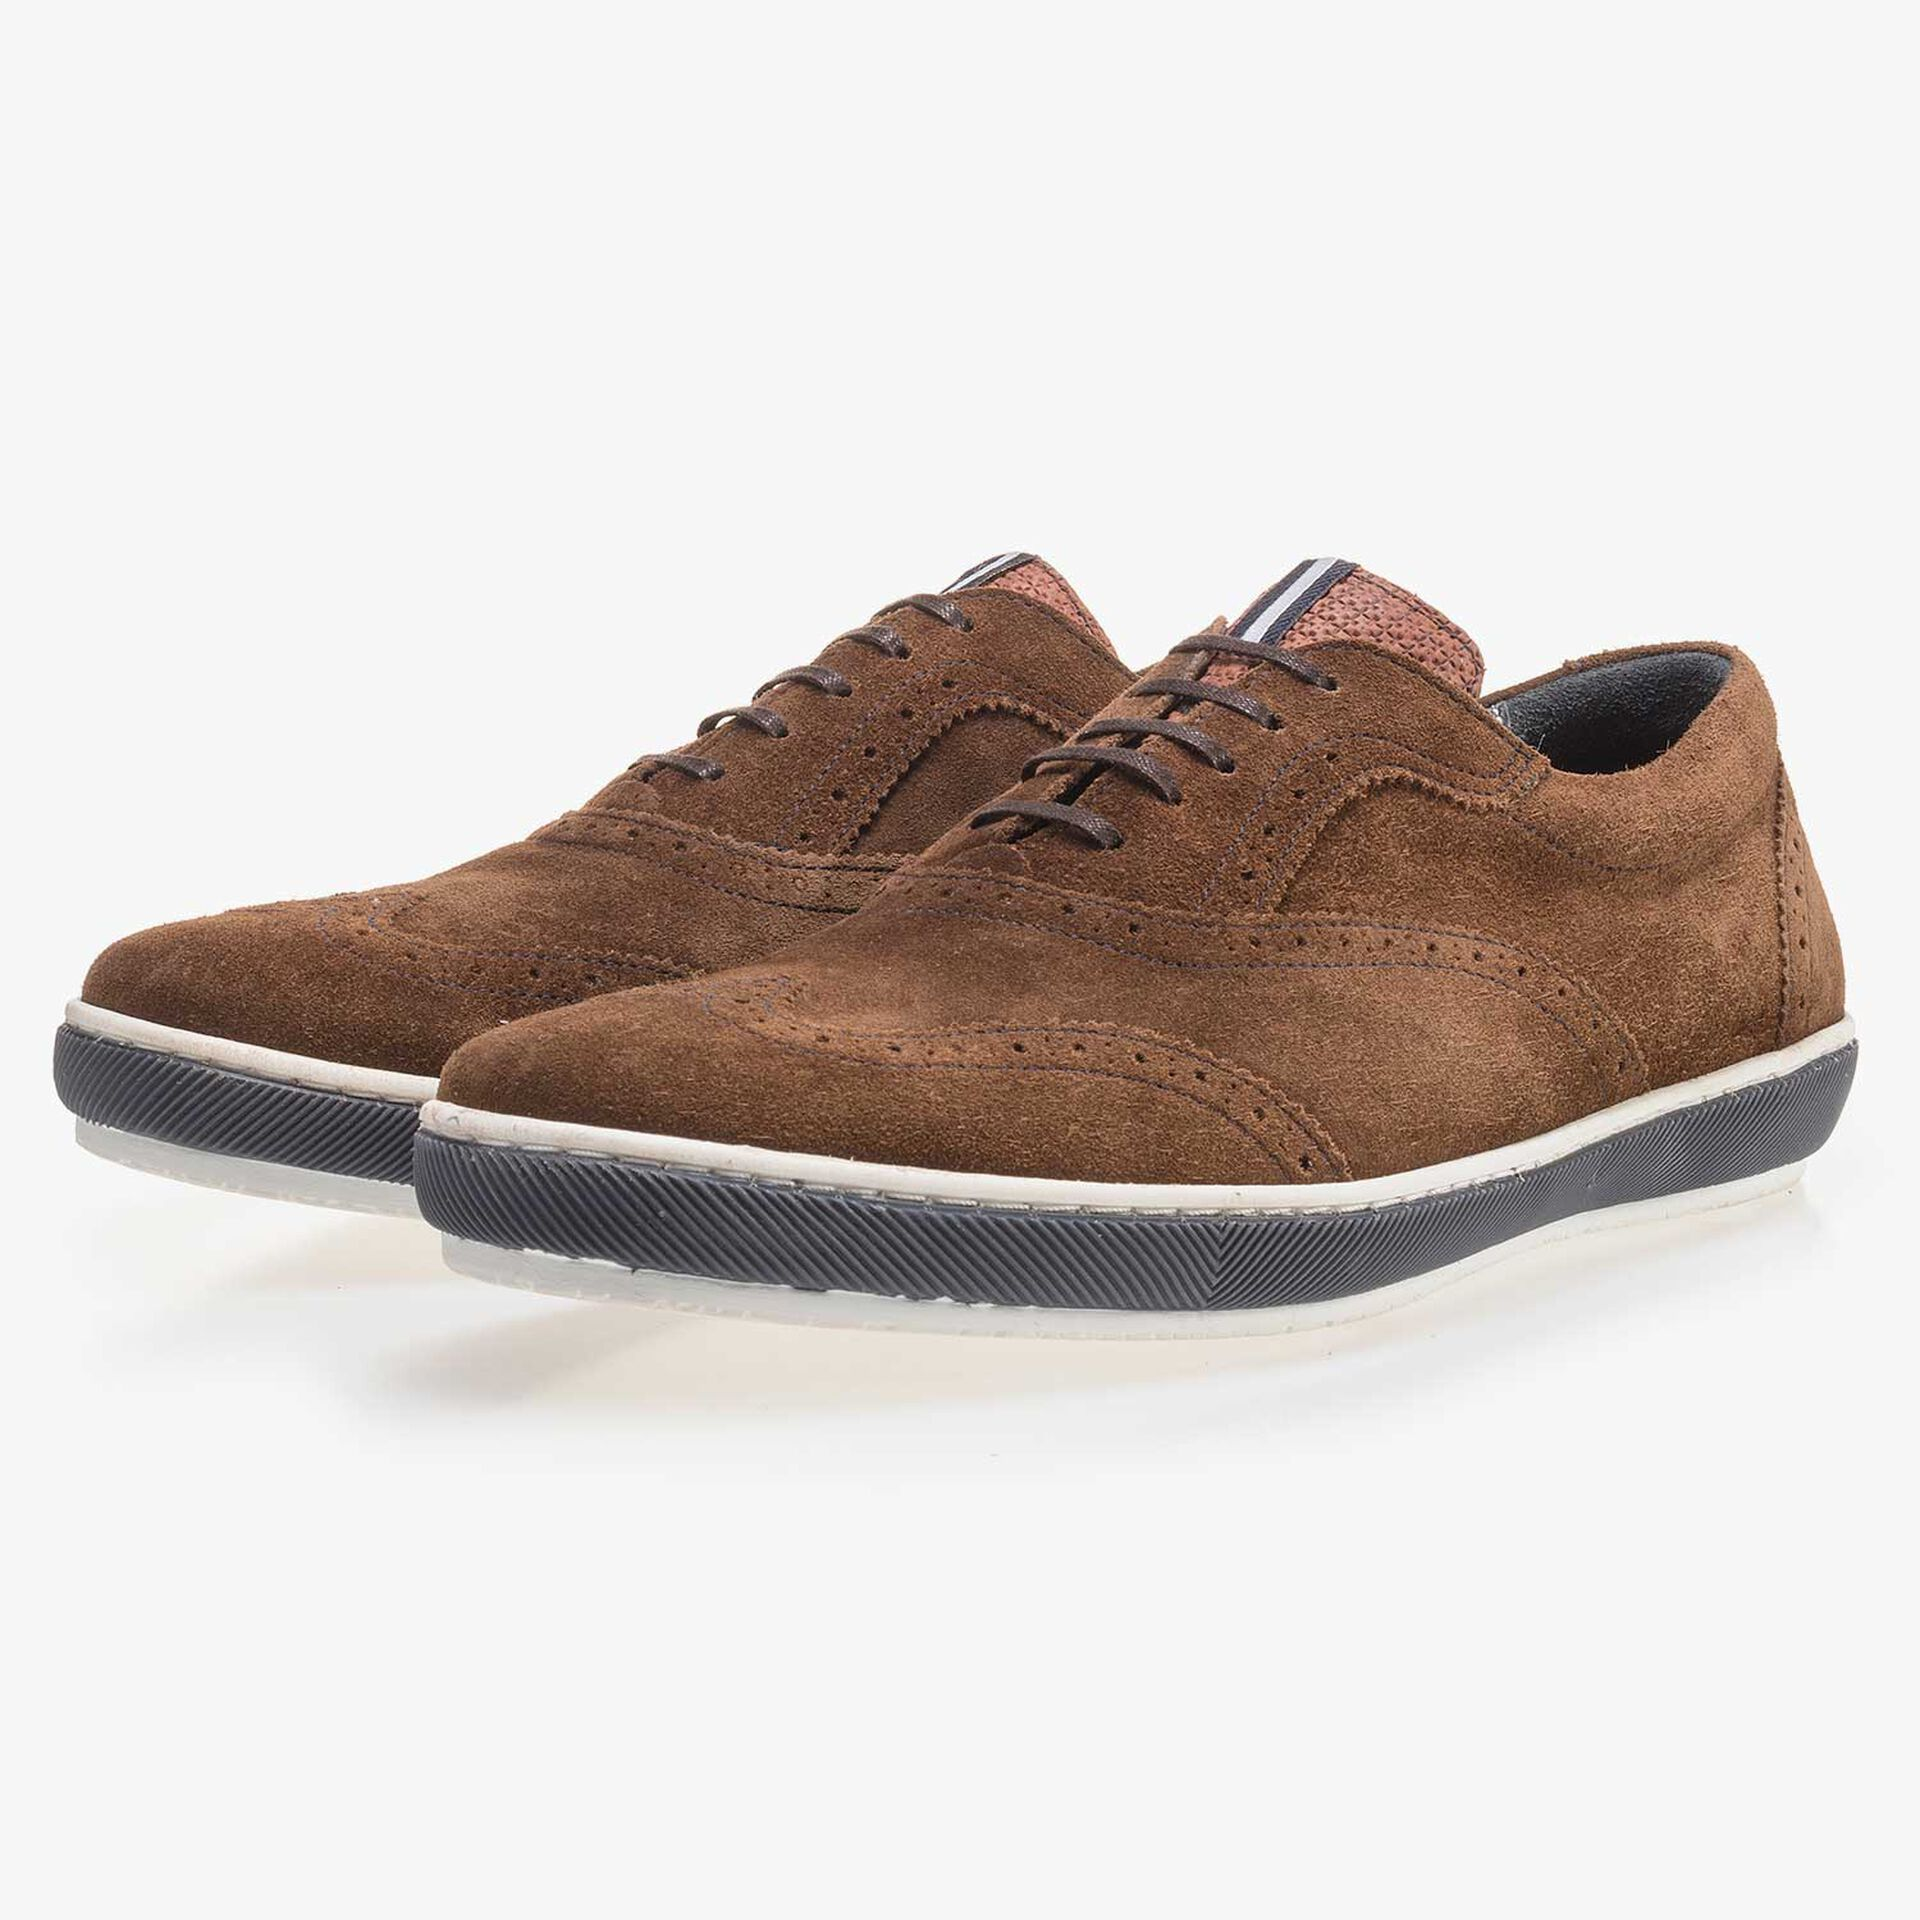 Brown brogue suede leather sneaker